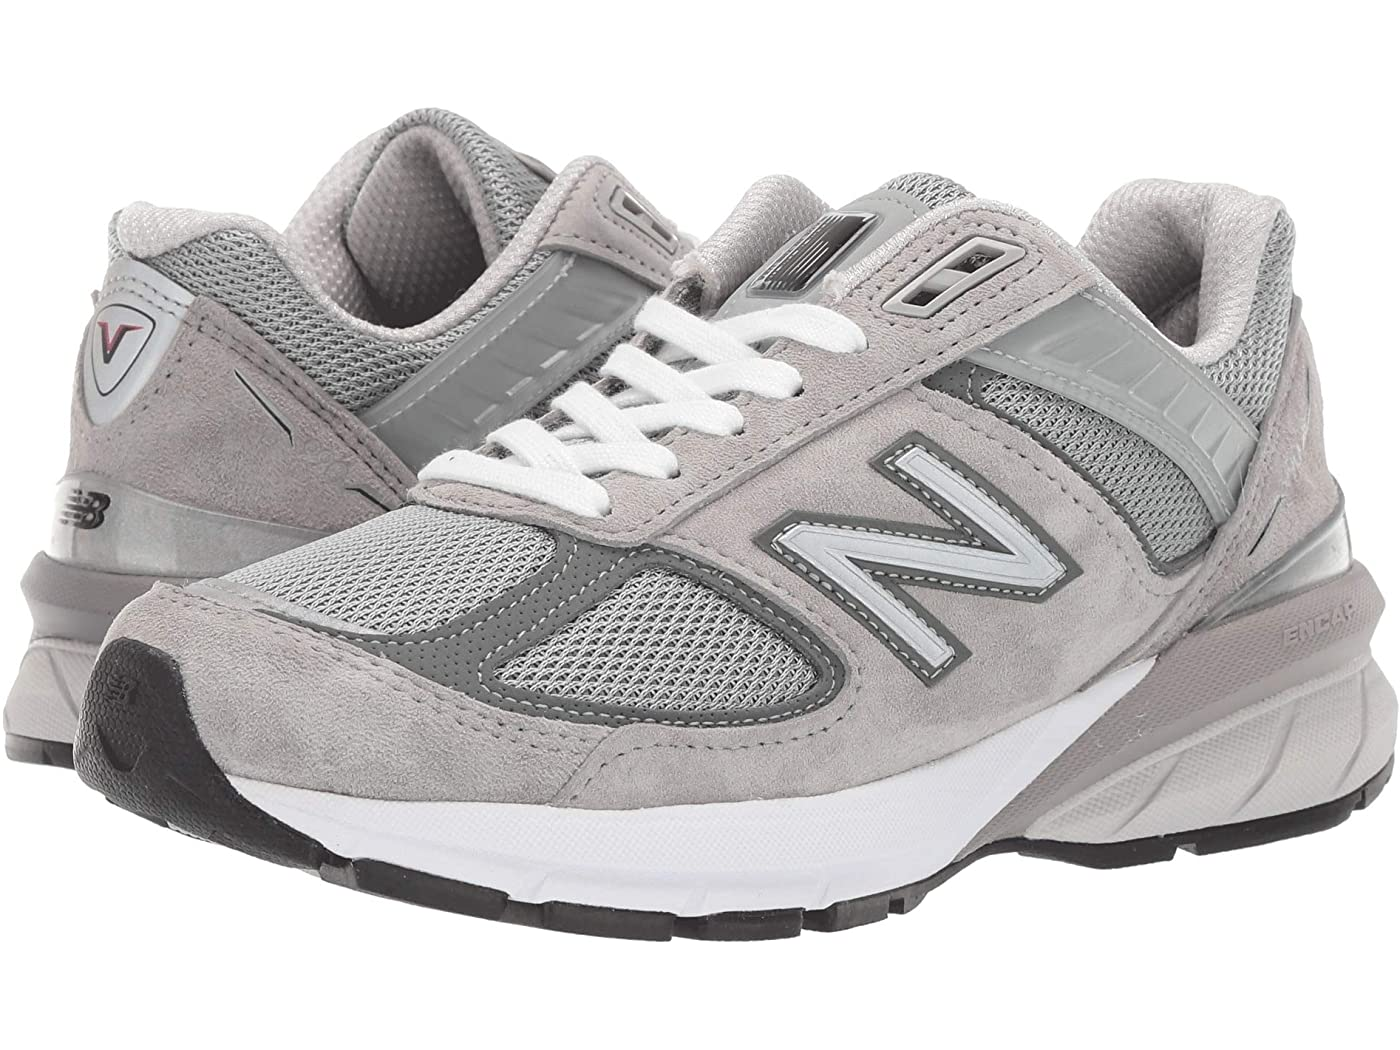 990V5 Sneakers by New Balance, available on zappos.com for $174.95 Alessandra Ambrosio Shoes Exact Product